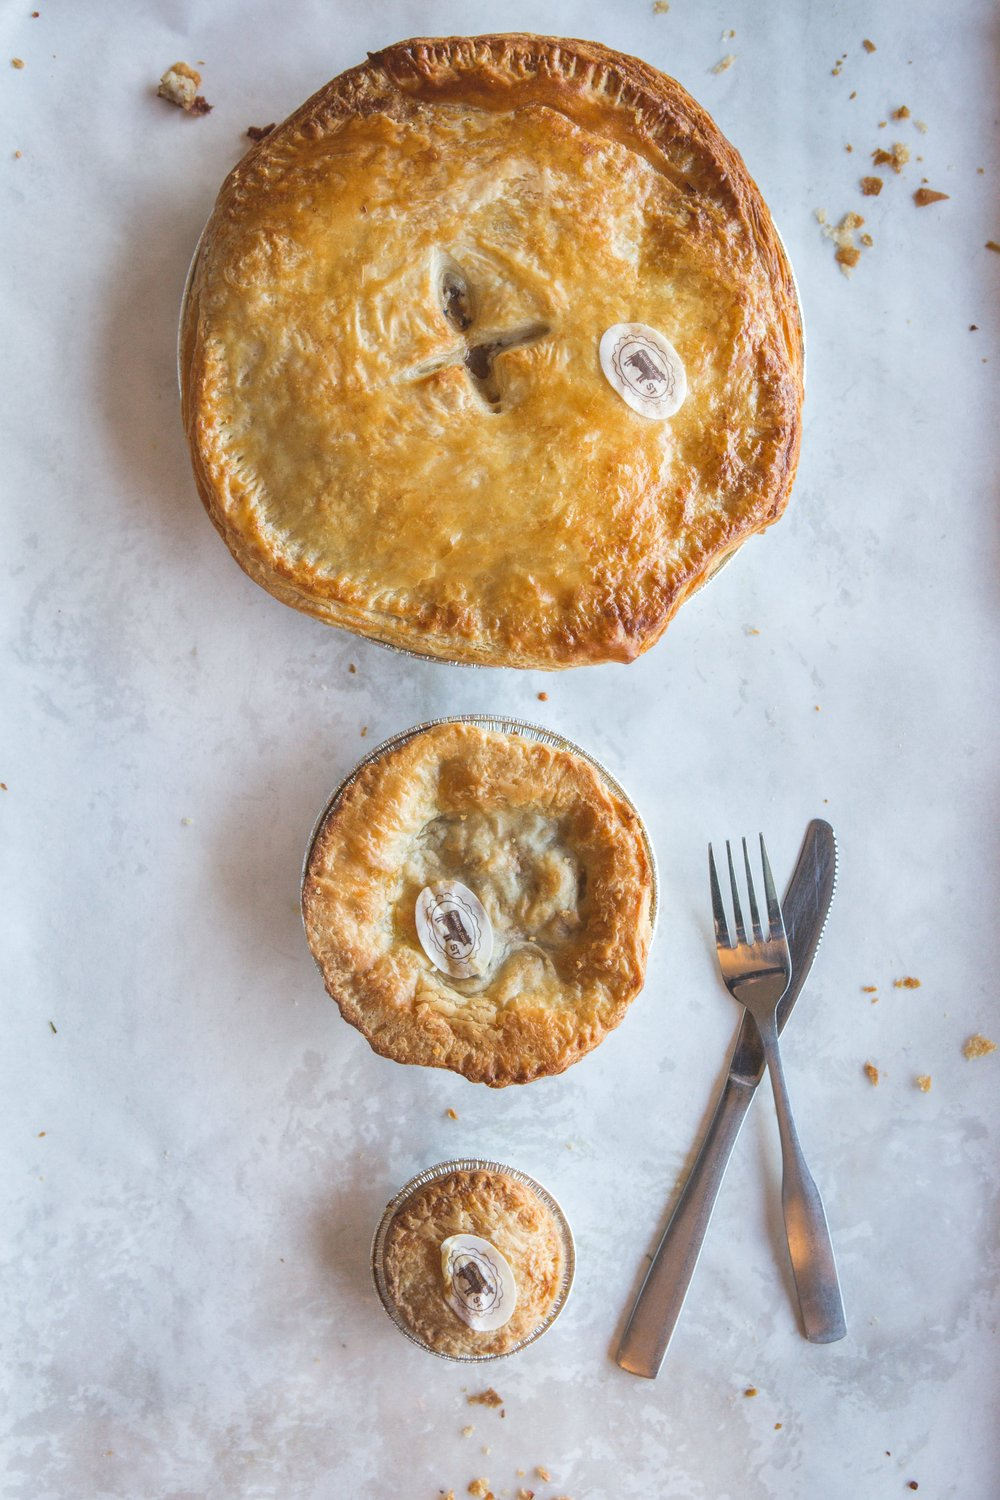 "All pies in 4 sizes -  Cuties, Even Cuters , 5"" personal and  9 inch family  - feed 6-8 - depending how hungry or greedy you are!"